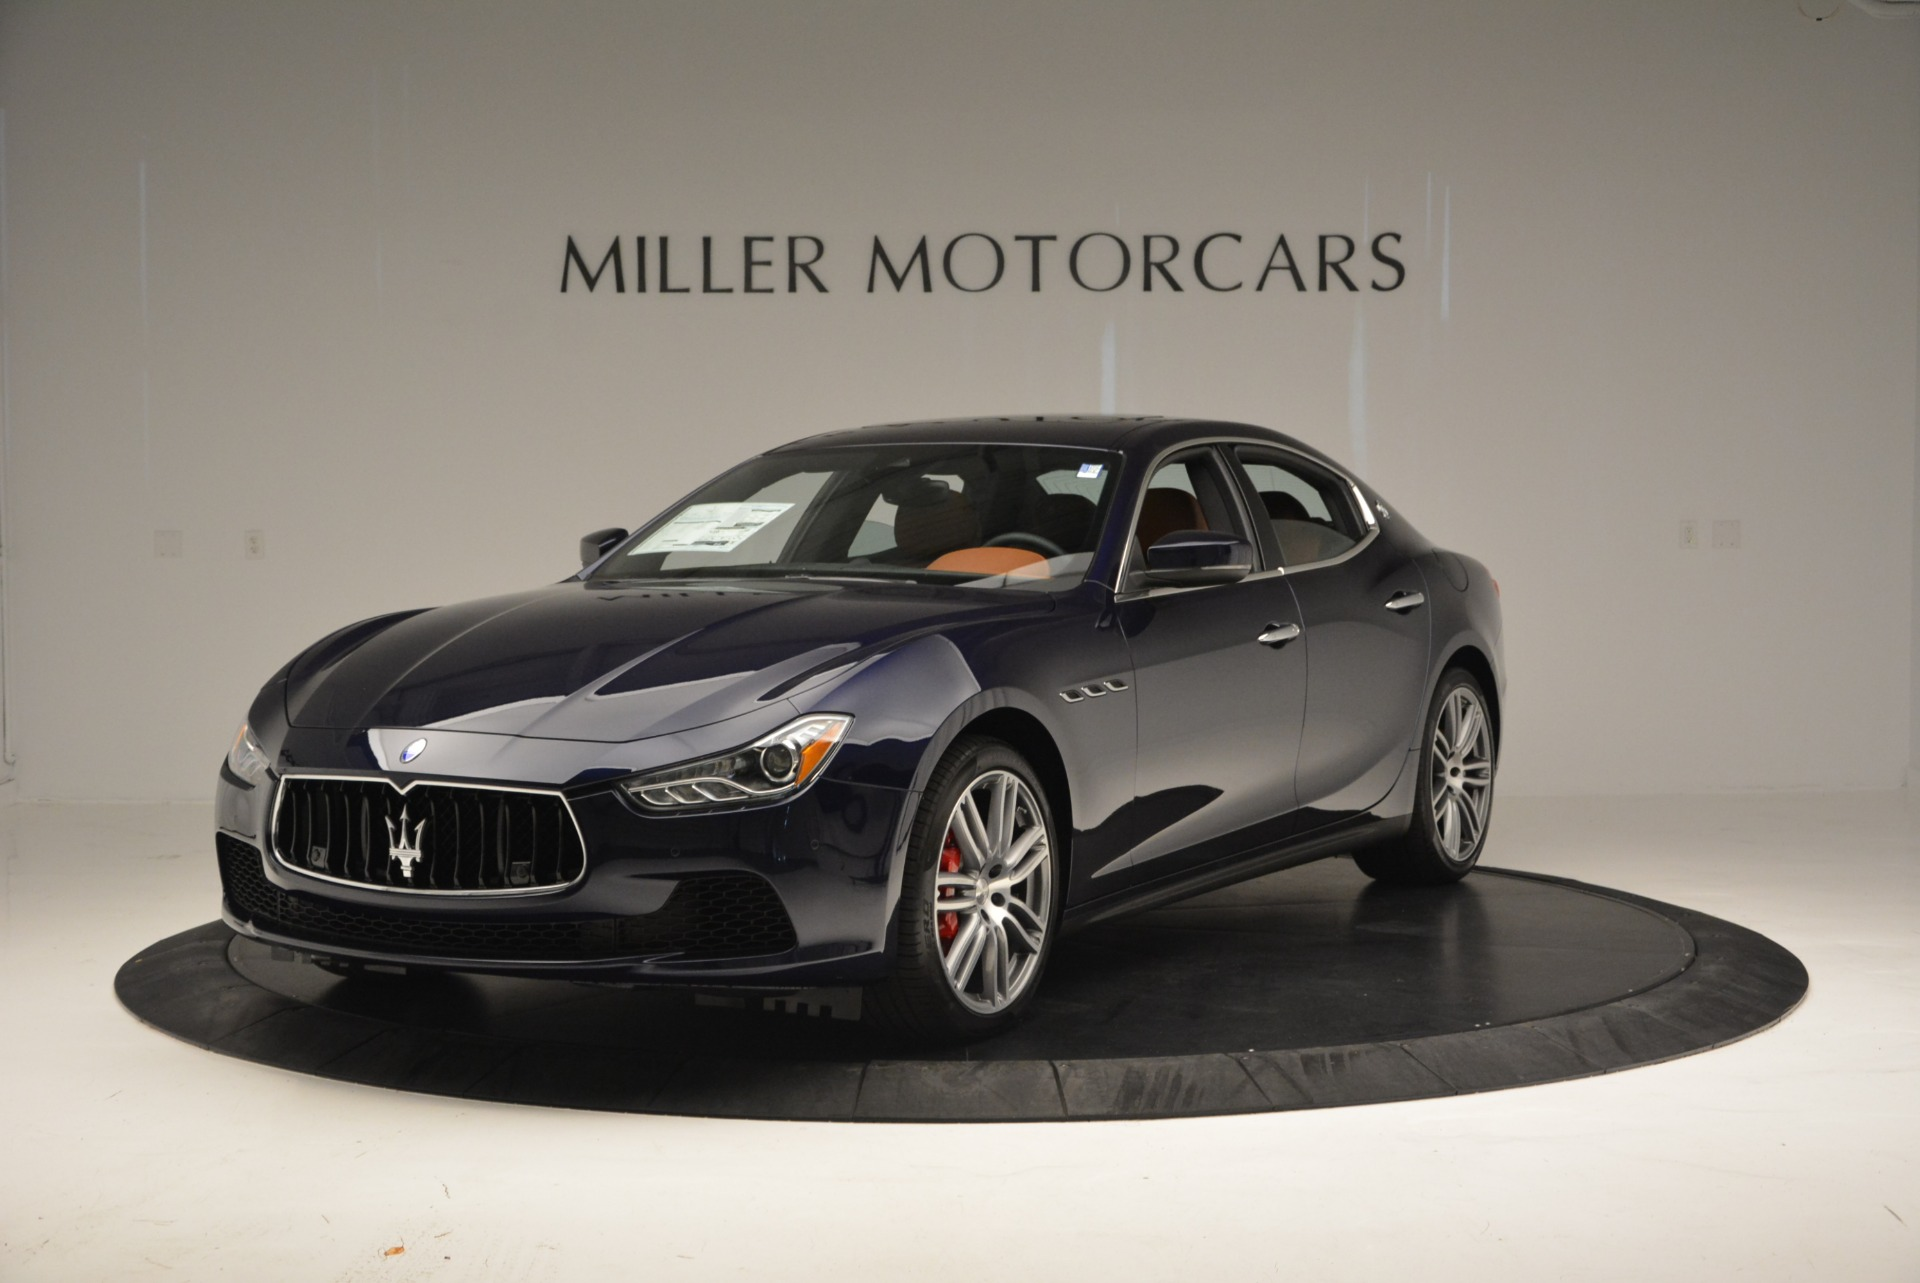 New 2019 Maserati Ghibli S Q4 for sale Sold at McLaren Greenwich in Greenwich CT 06830 1